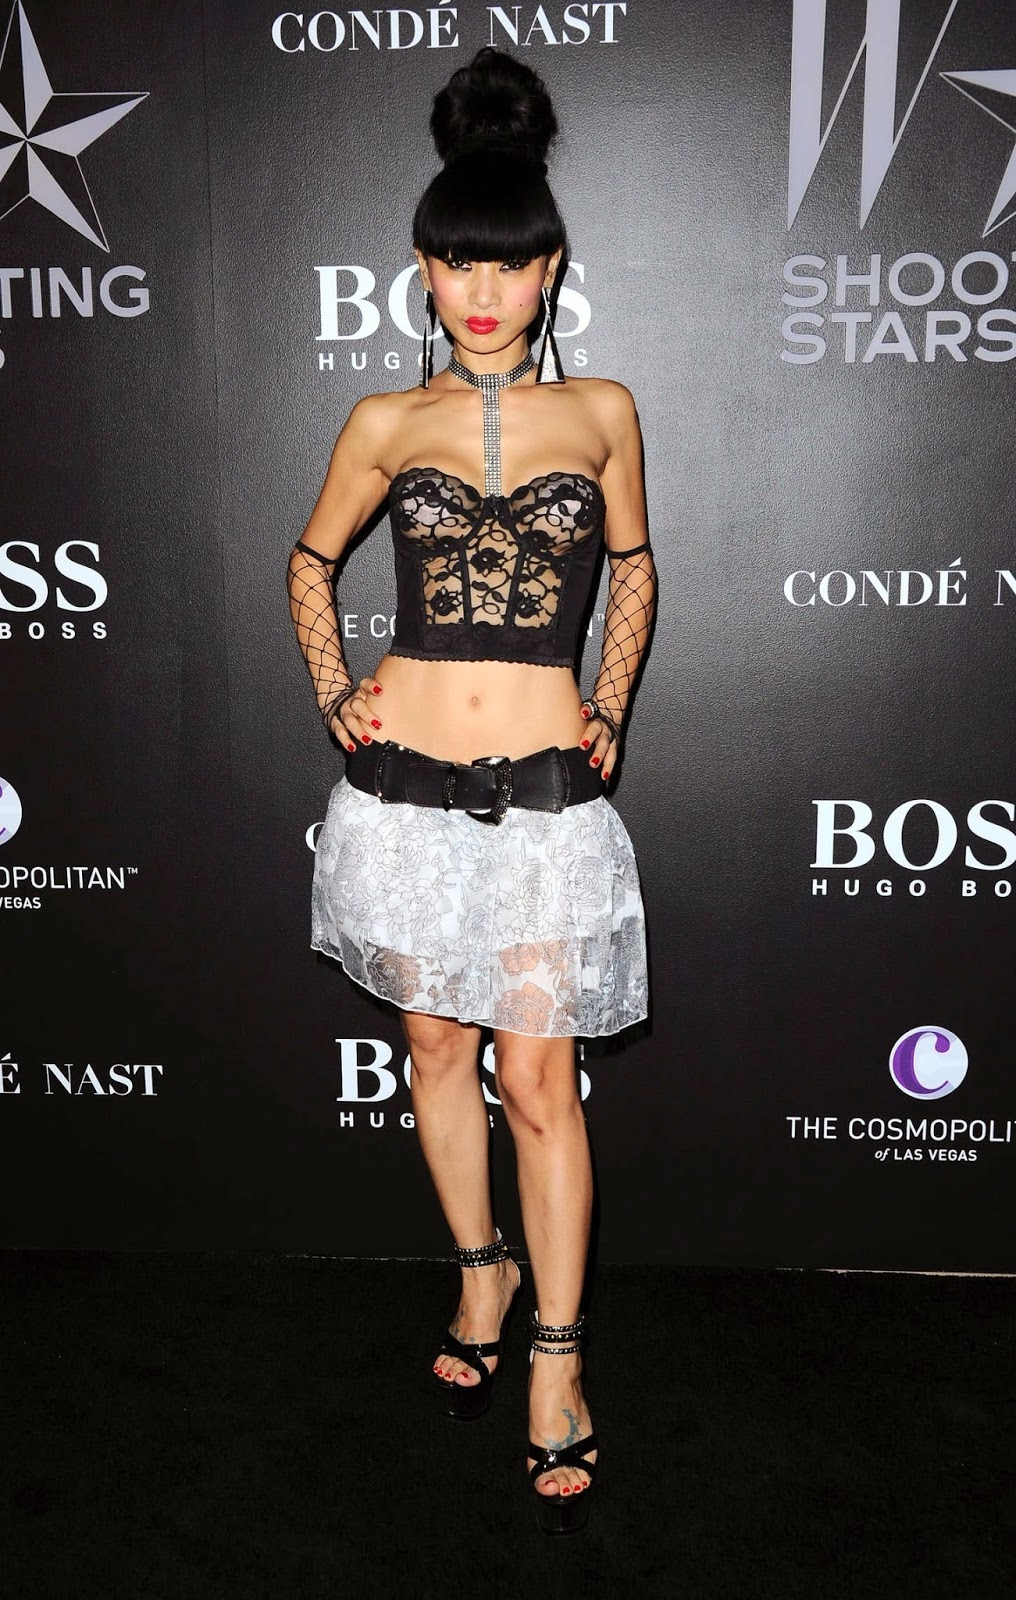 Bai Ling - W Magazines Shooting Stars Exhibit in LA